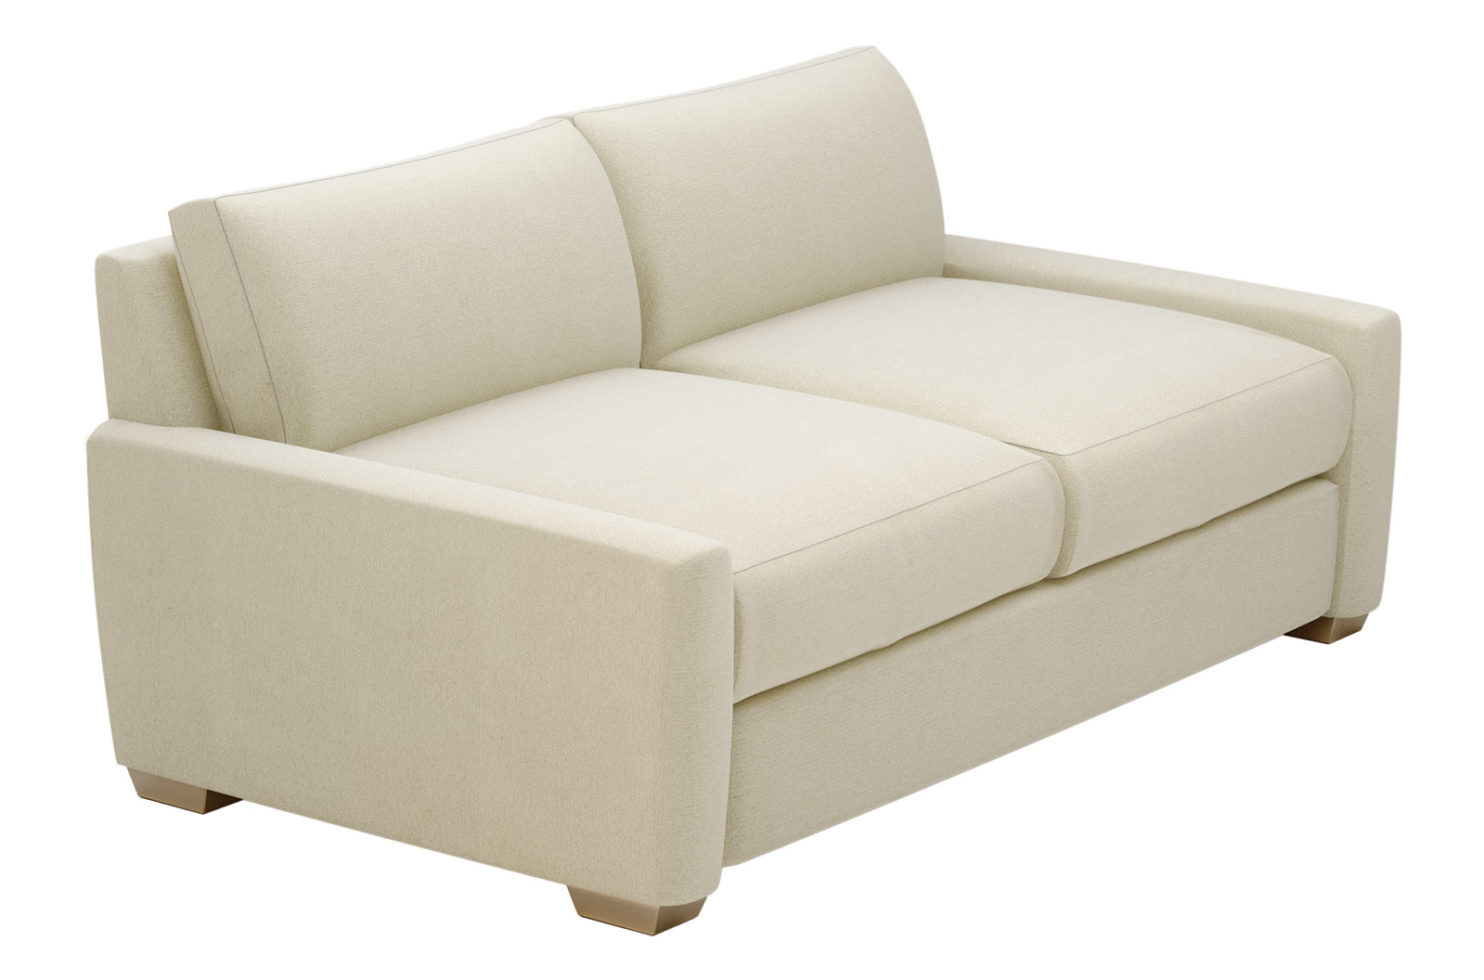 fizz imperial apartment sofa 105FT004P2 SS